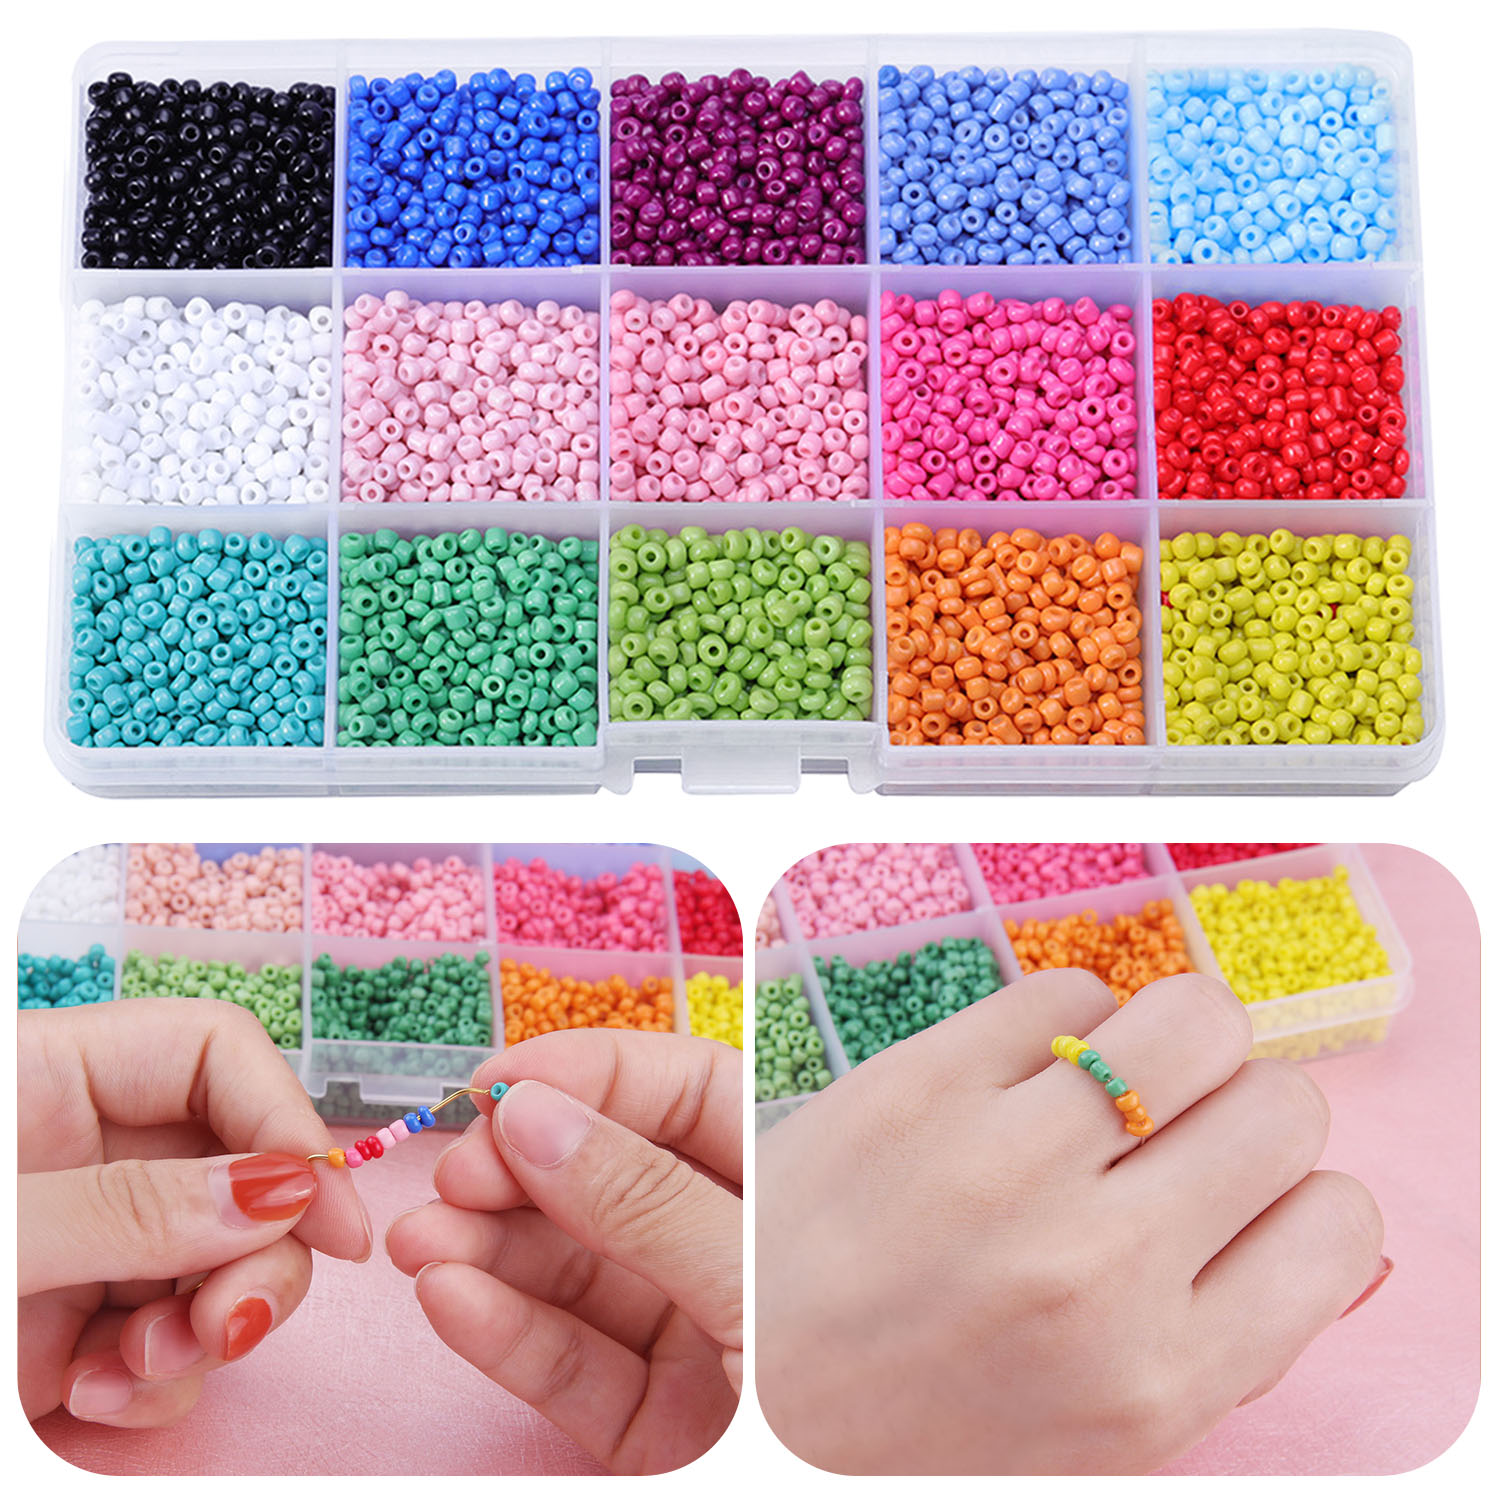 Colorful Beads 3mm Glass Beads Pony Mini Beads For Making Jewelry Necklaces Bracelets Earring Gift DIY Craft Children Adult